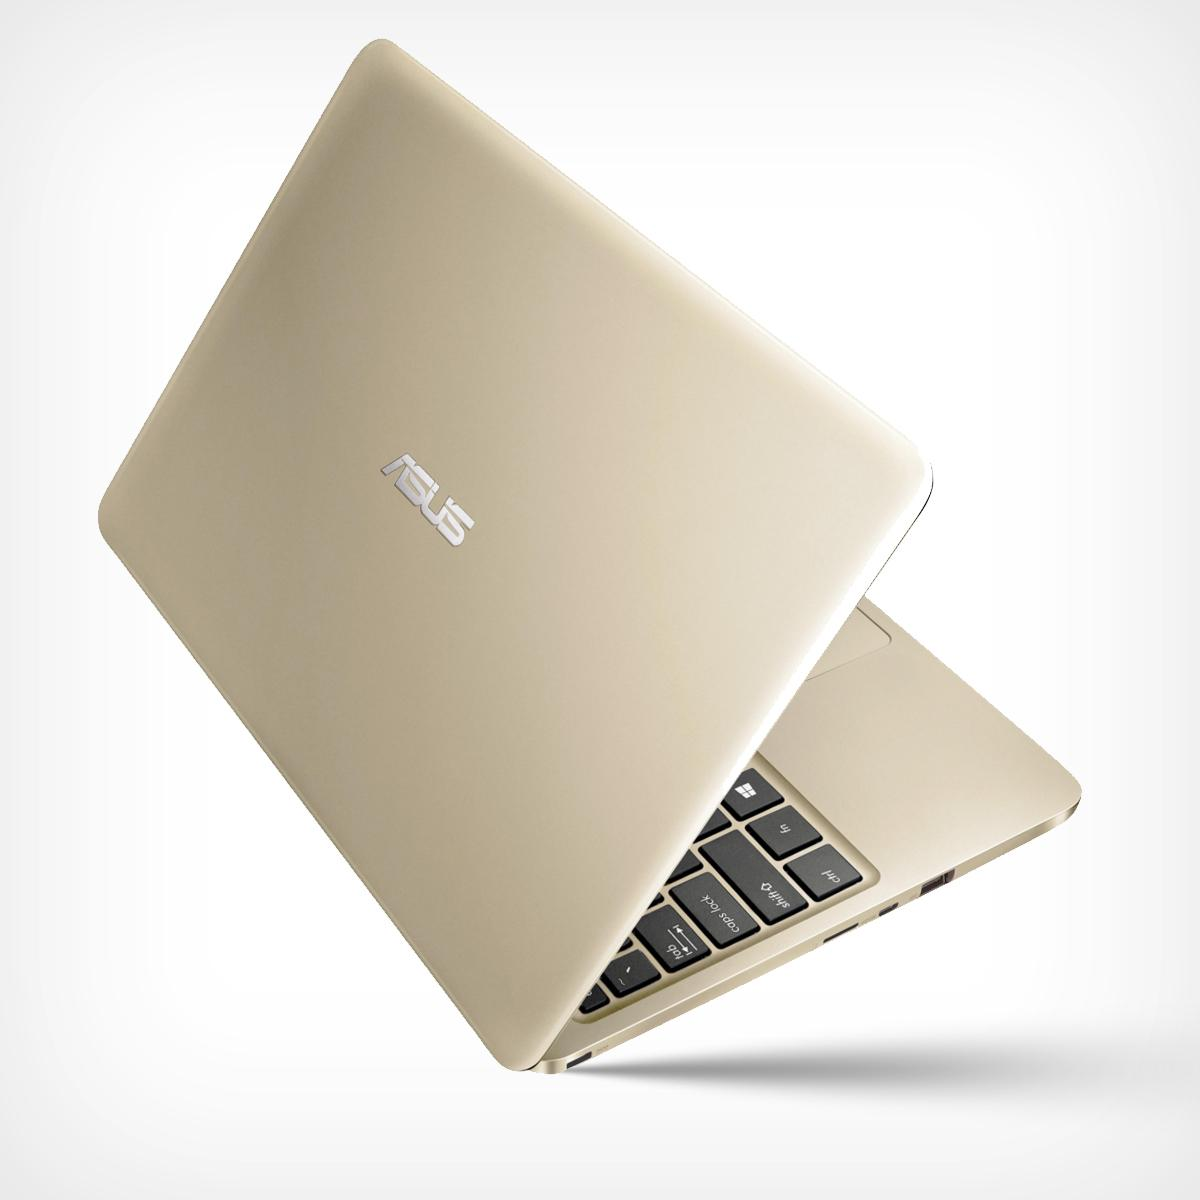 asus portable 11 6 intel quad core laptop 4gb ram 32gb. Black Bedroom Furniture Sets. Home Design Ideas